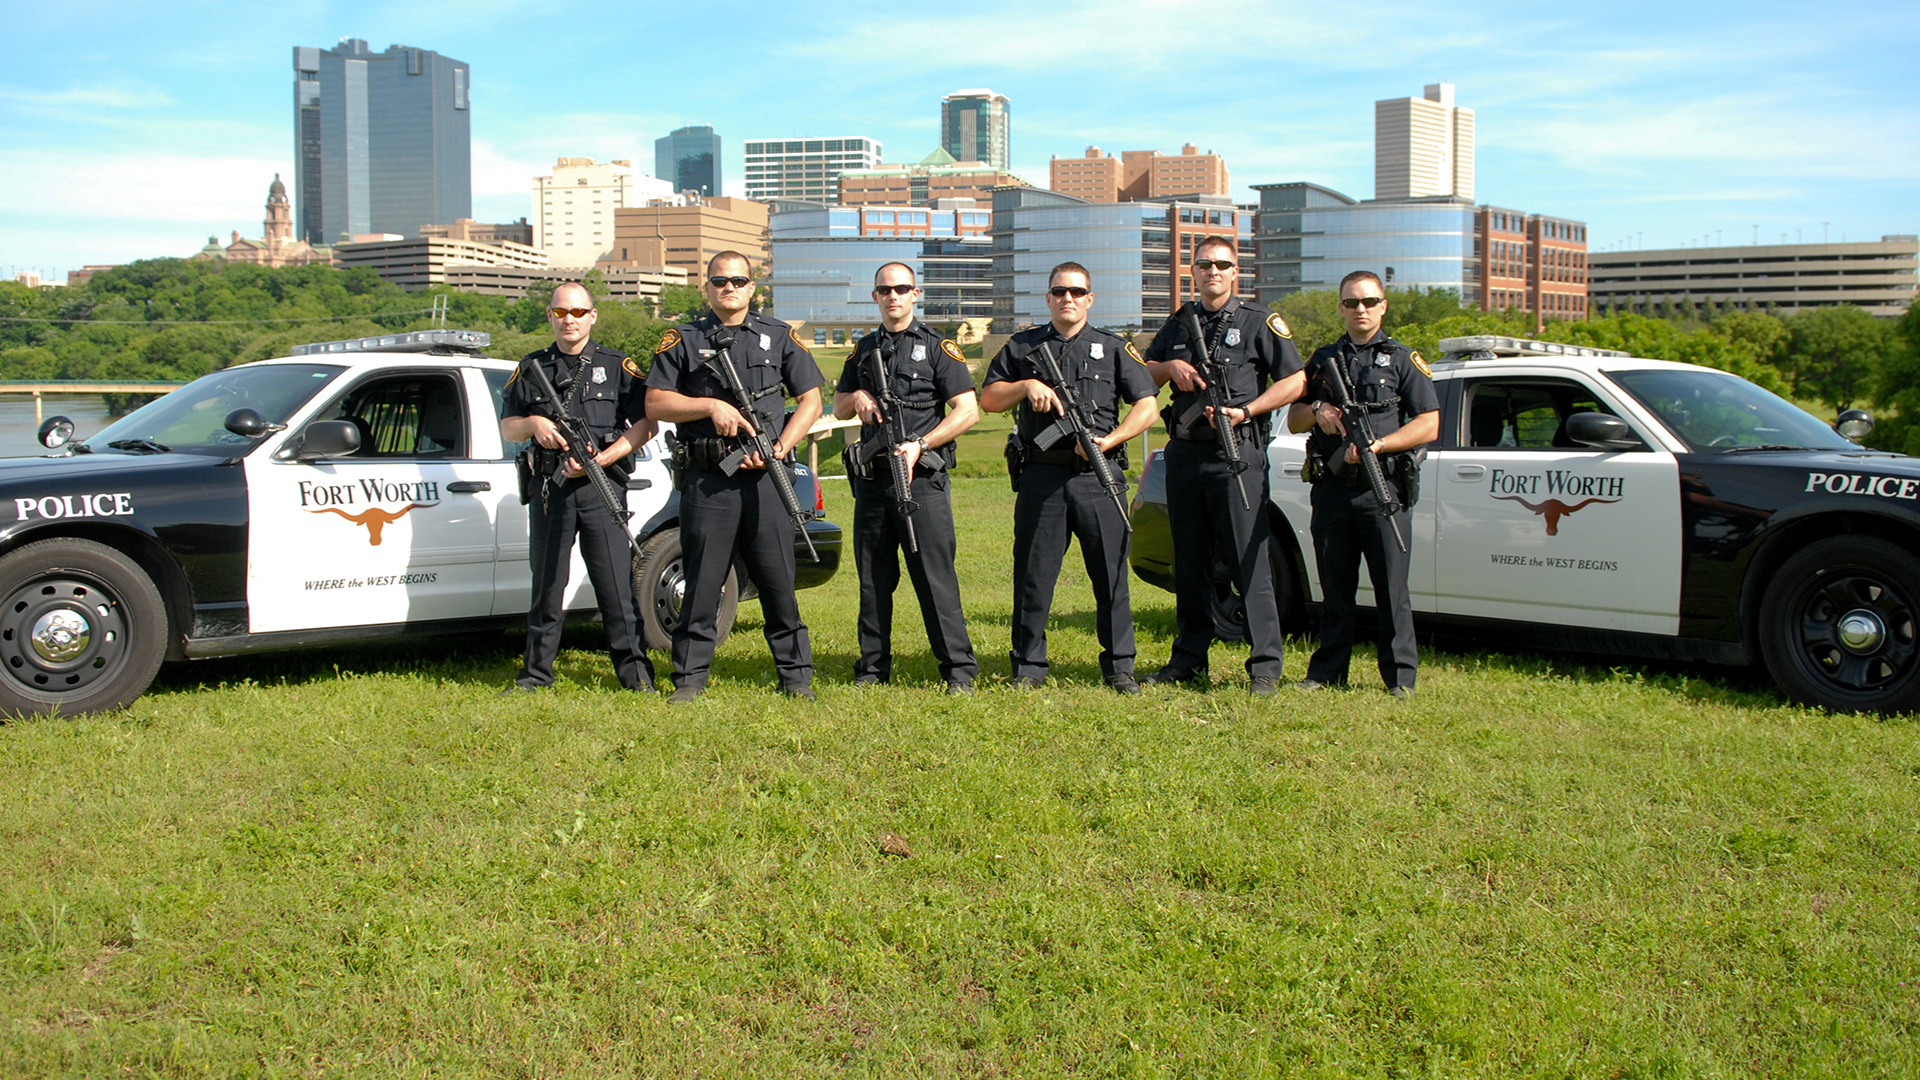 Police and squad cars with downtown Fort Worth in background